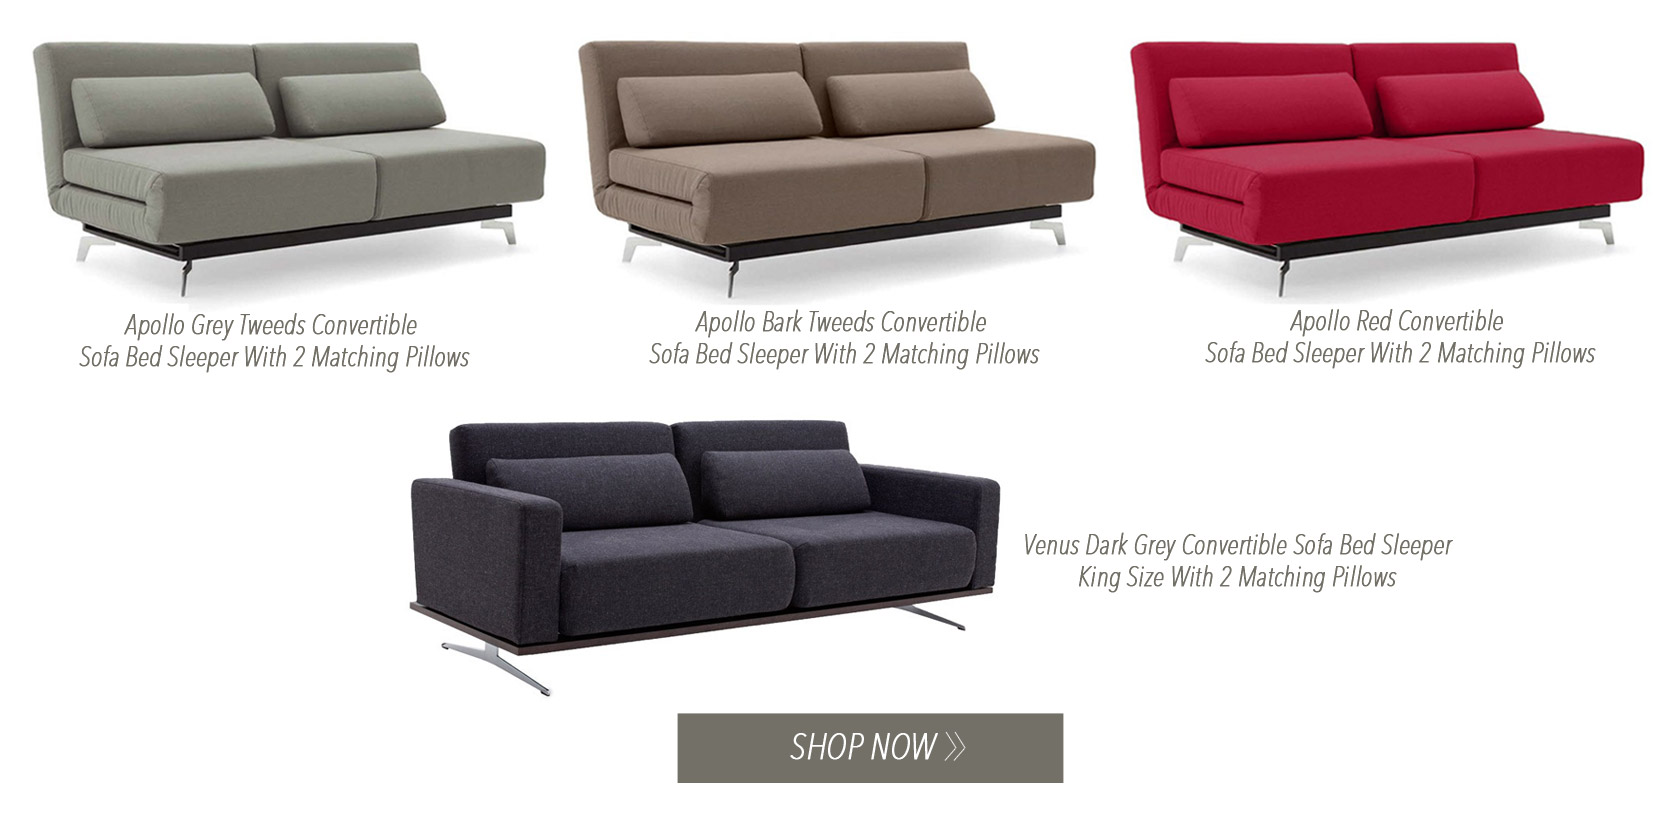 King Size Futons Modern Sofa Beds